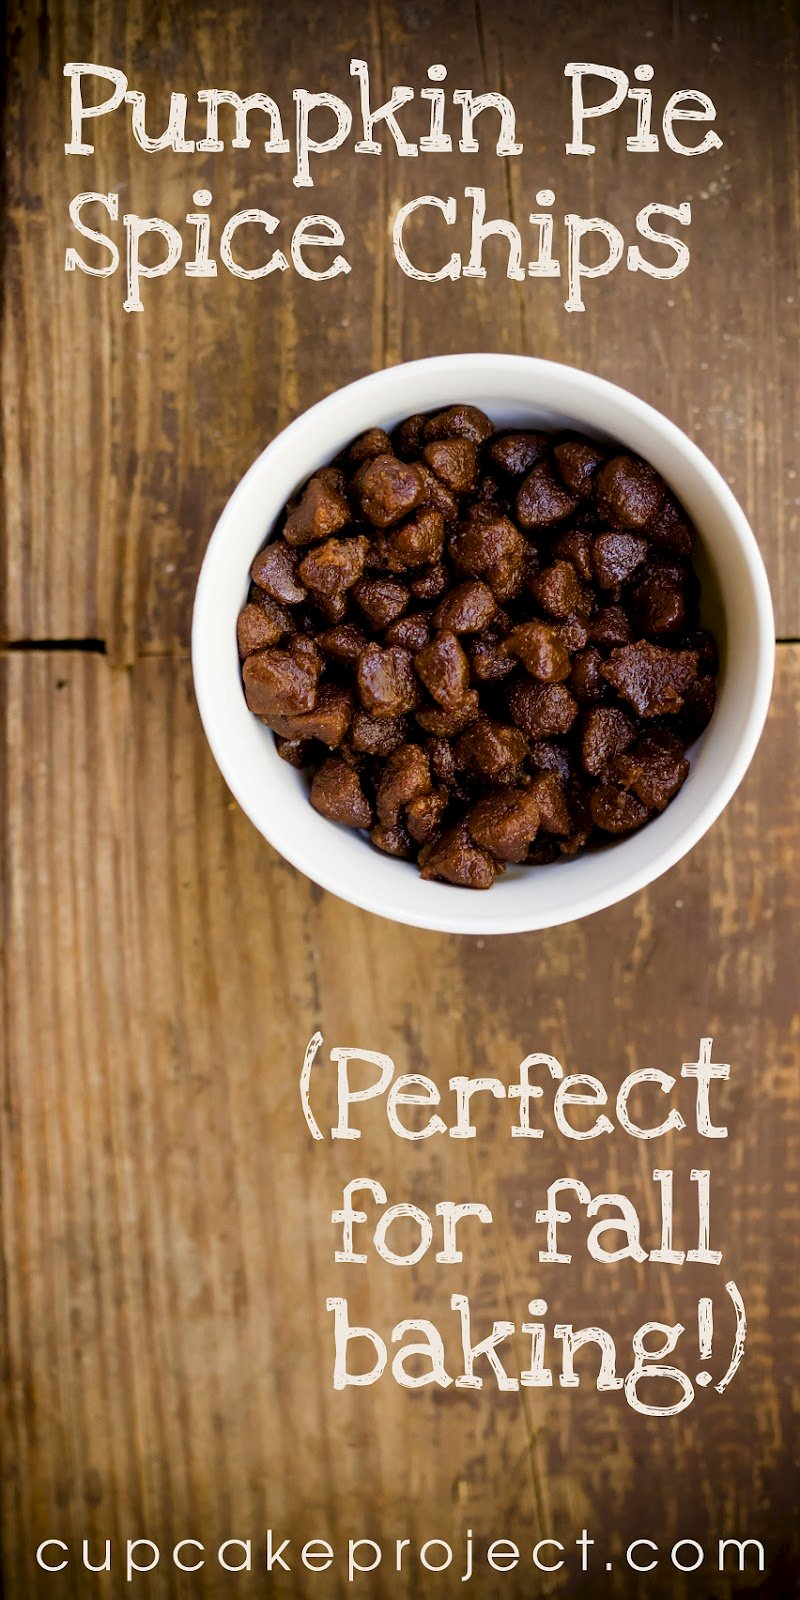 Pumpkin Pie Spice Chips – Perfect for Fall Baking